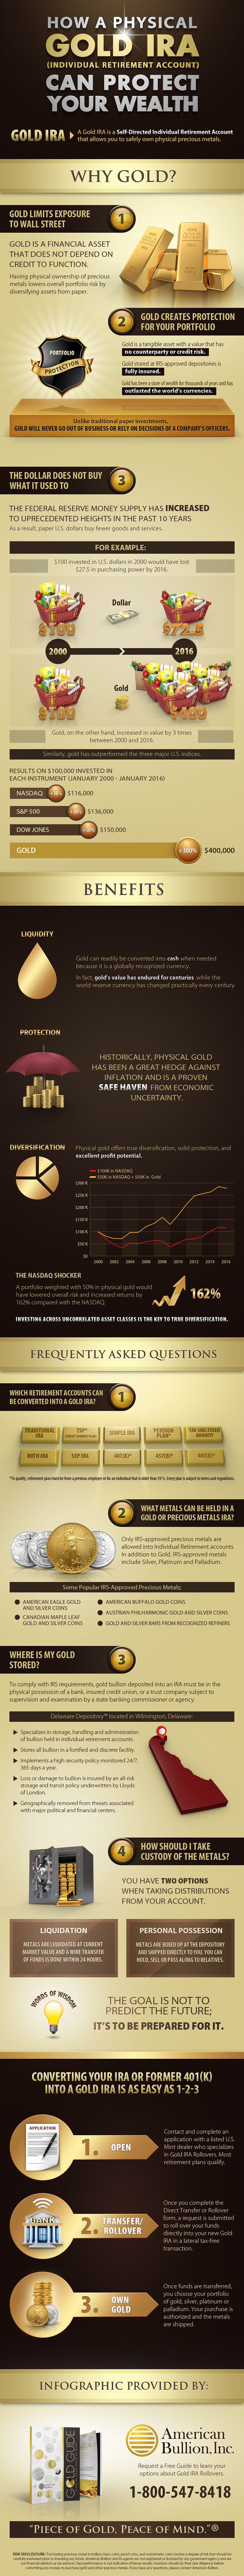 How a Physical Gold IRA Can protect Your Wealth Infographic